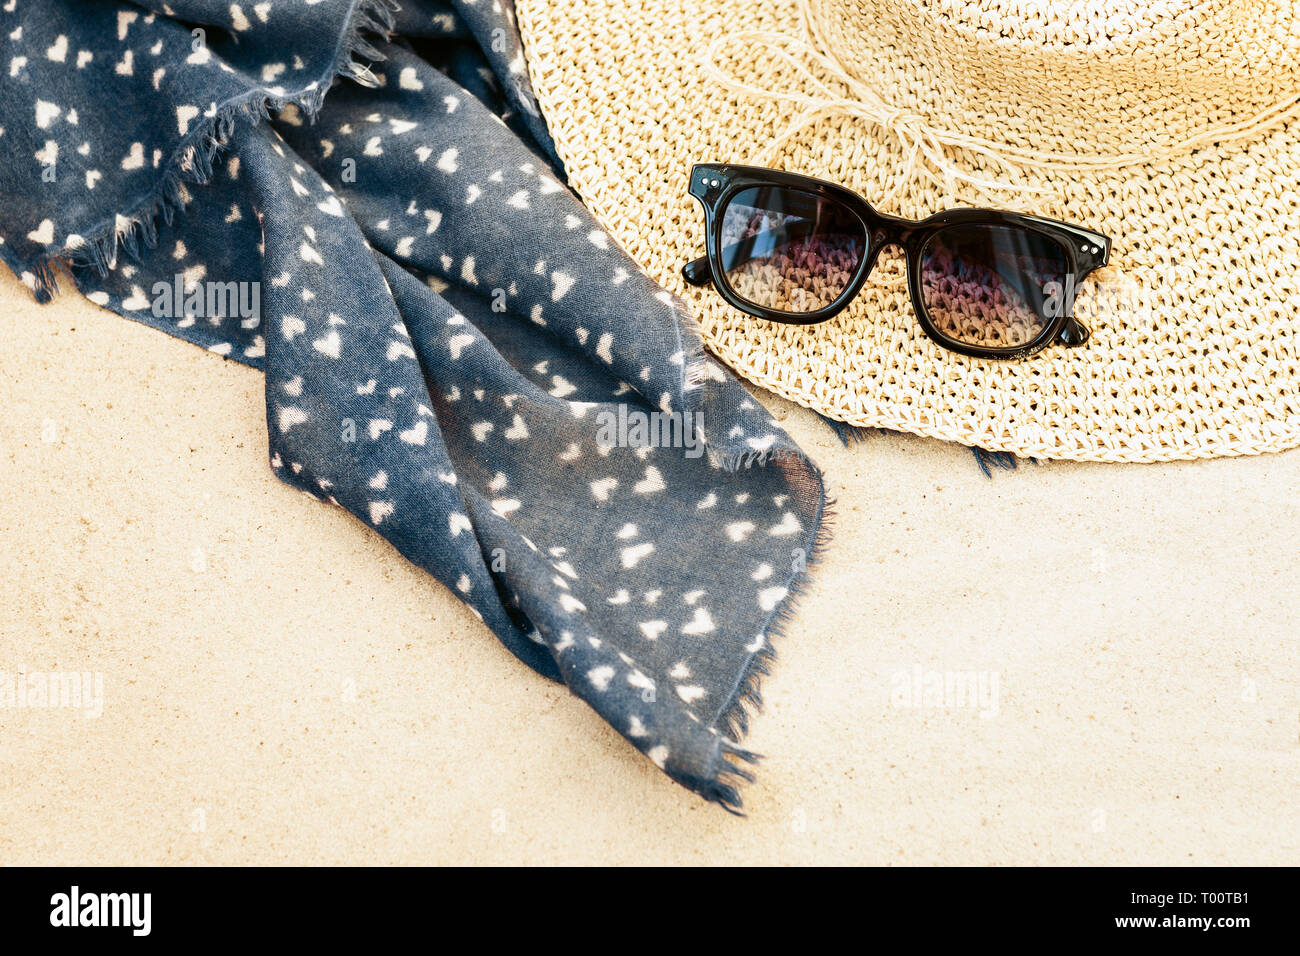 2dacd8b0 Vintage summer wicker straw beach bag, sun glasses and bag on the sand -  Stock